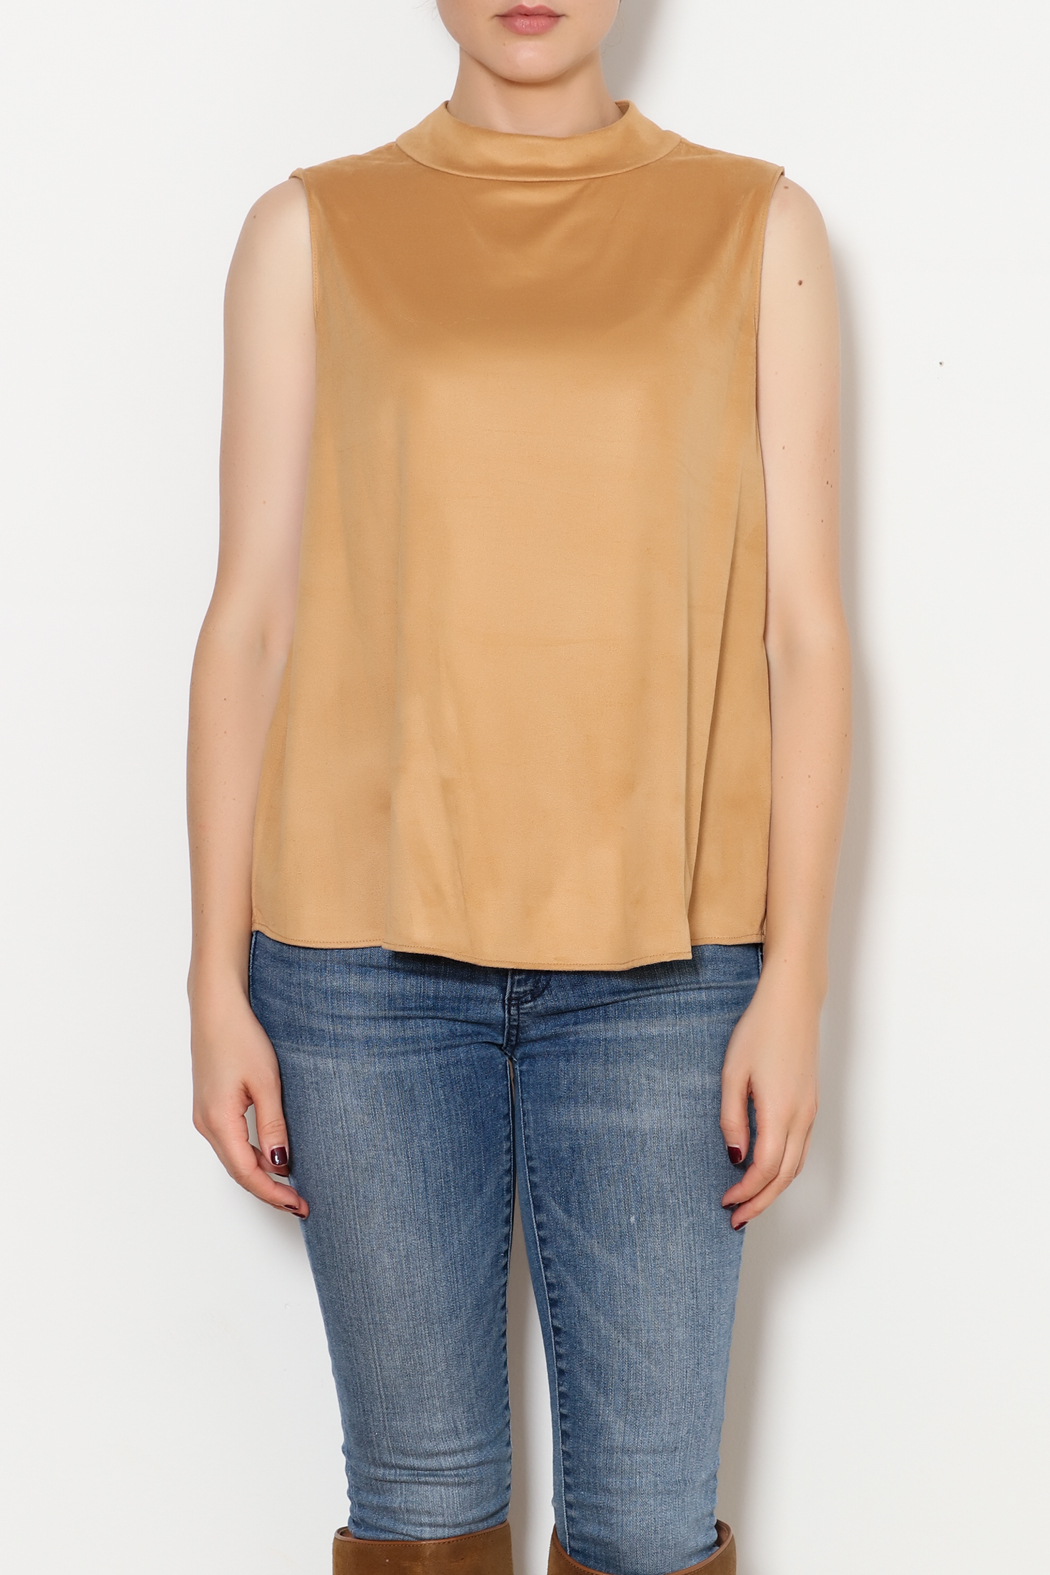 Kay Celine High Collar Suede Tank - Front Full Image